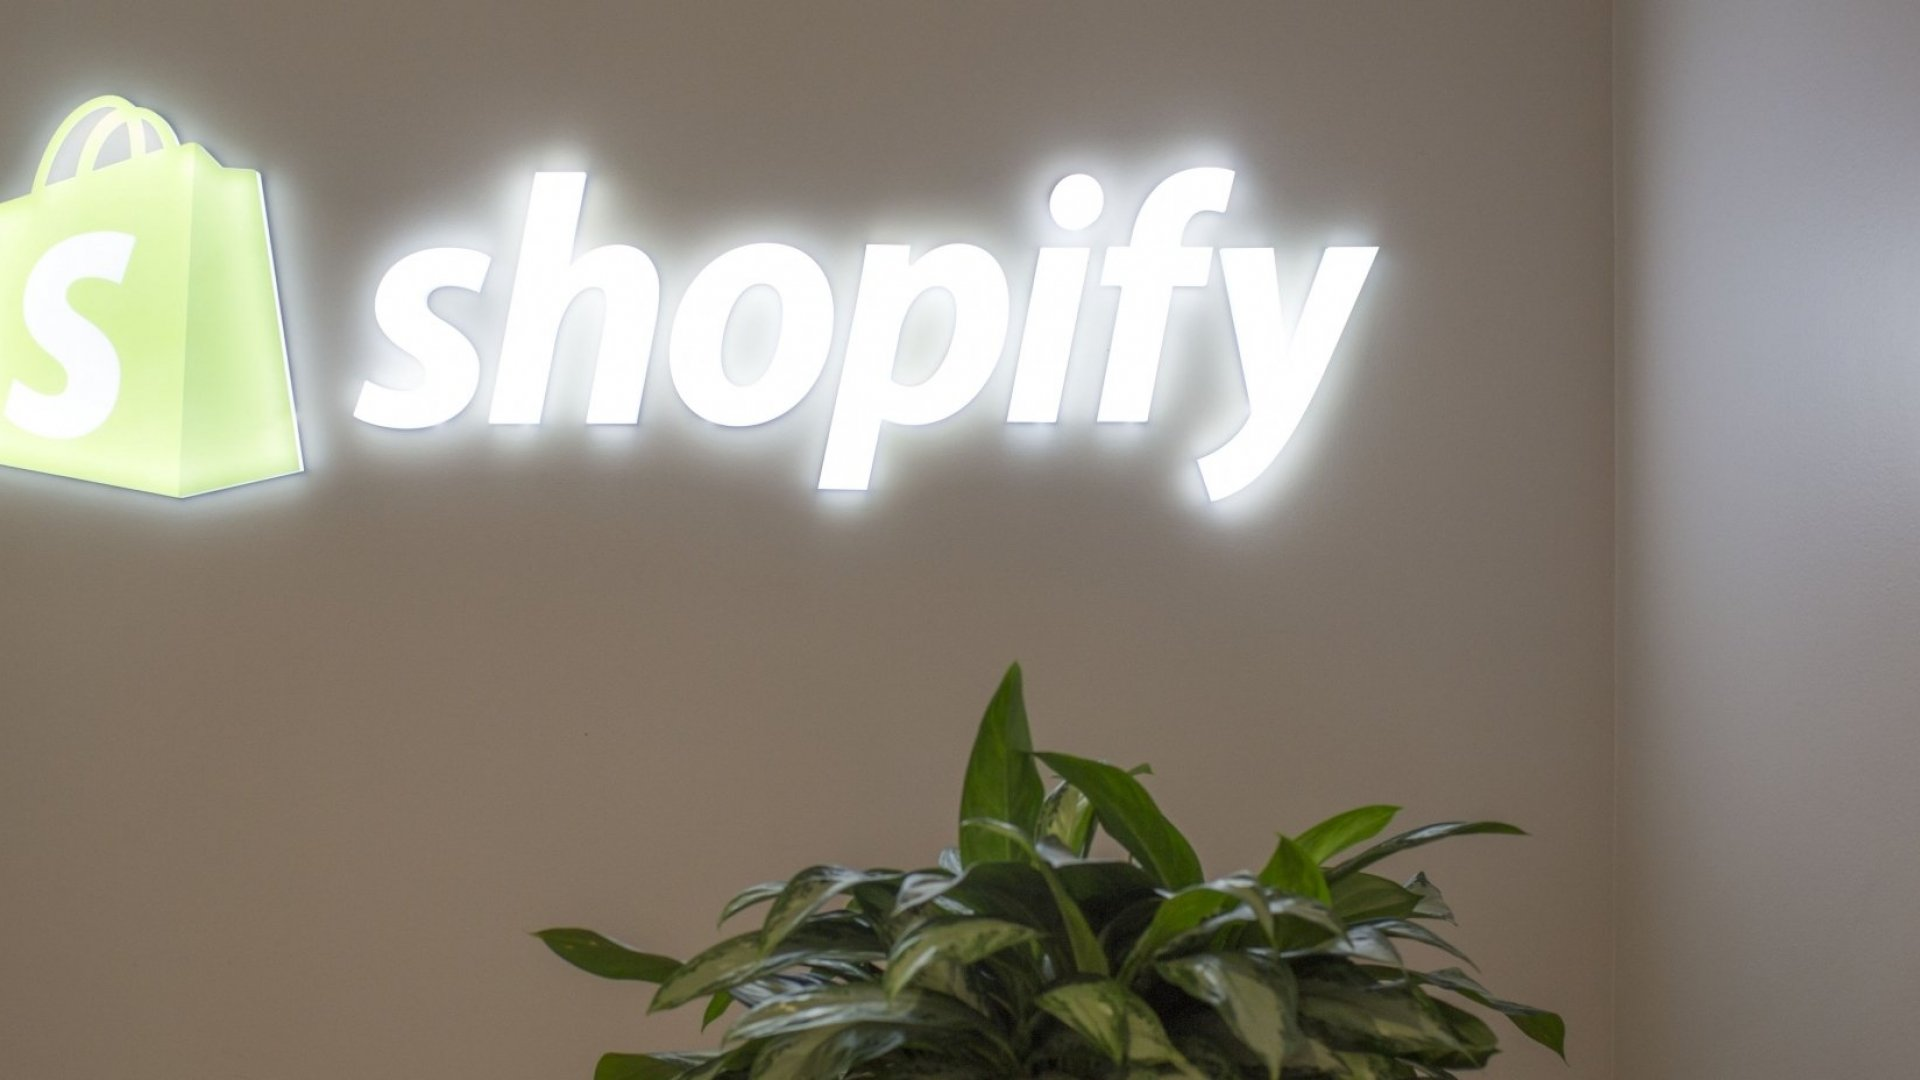 Shopify Reports First Quarter Loss of $8.9 Million